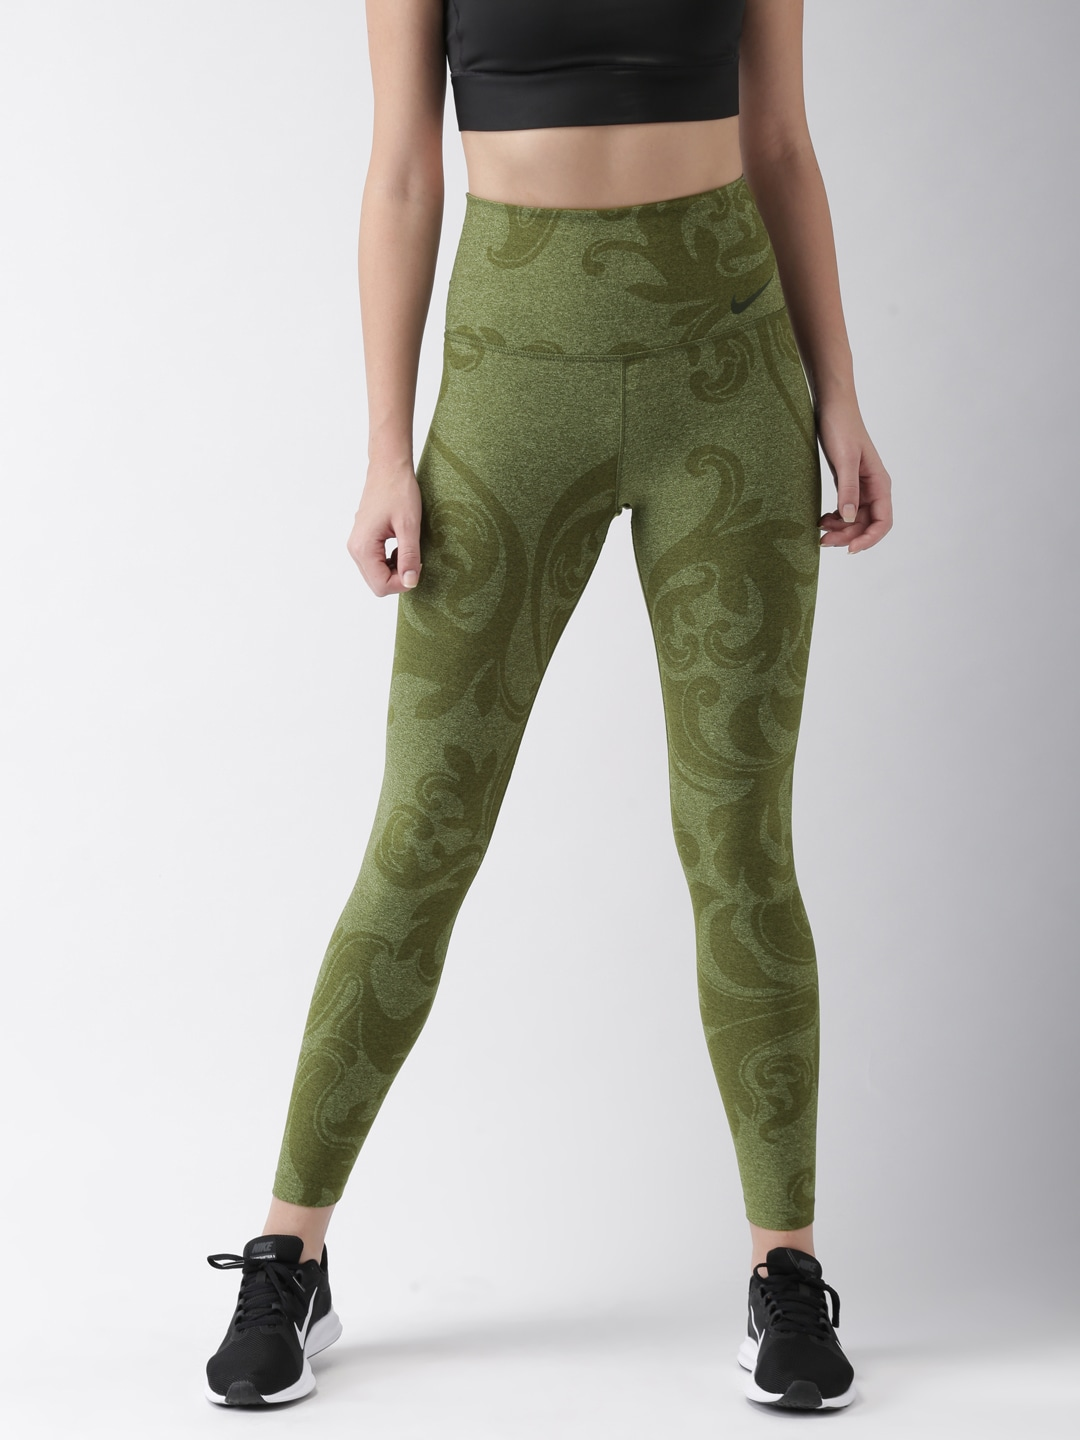 9b8e768157d97 Nike Tights And Set - Buy Nike Tights And Set online in India